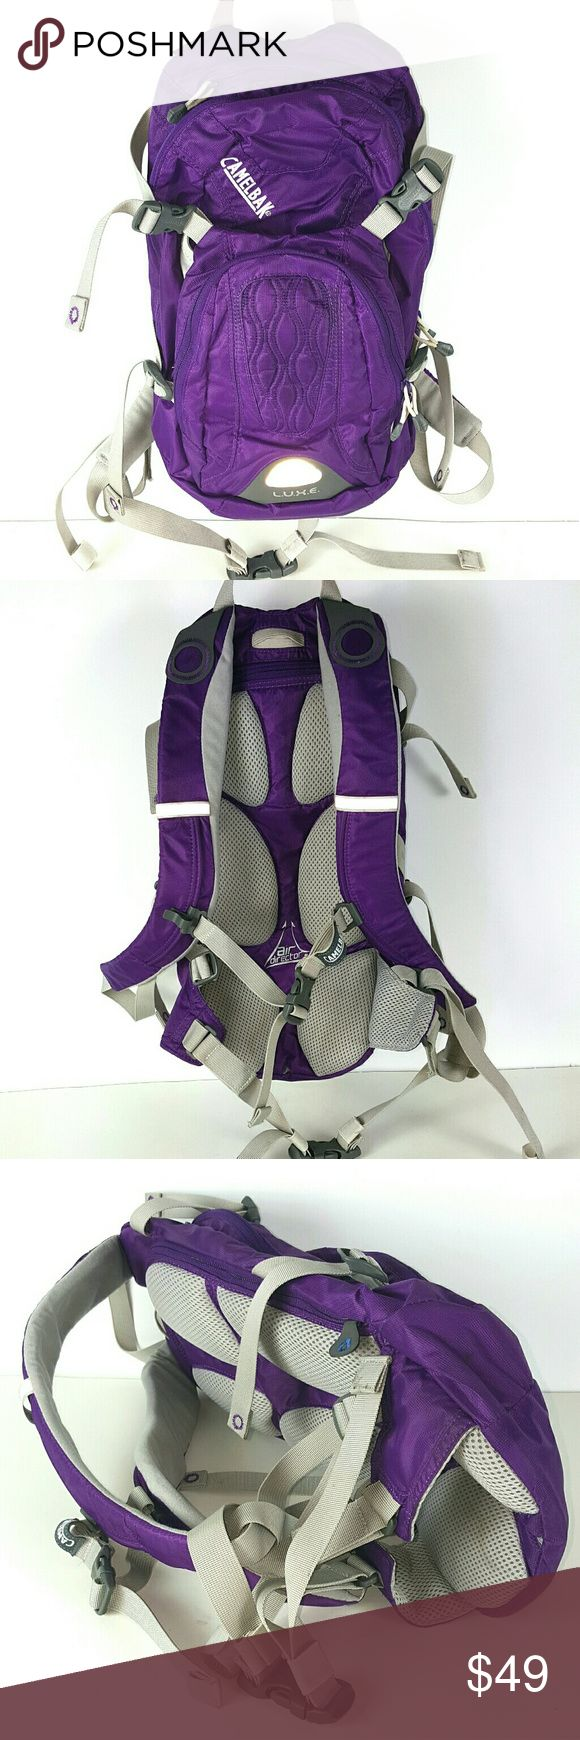 Camelbak Luxe Hydration backpack,  No Blader This backpack is in clean and excellent condition with  few hardly noticeable stains to remove....it has no liquid blader, but You can simply insert Yours as needed. Camelbak  Bags Backpacks